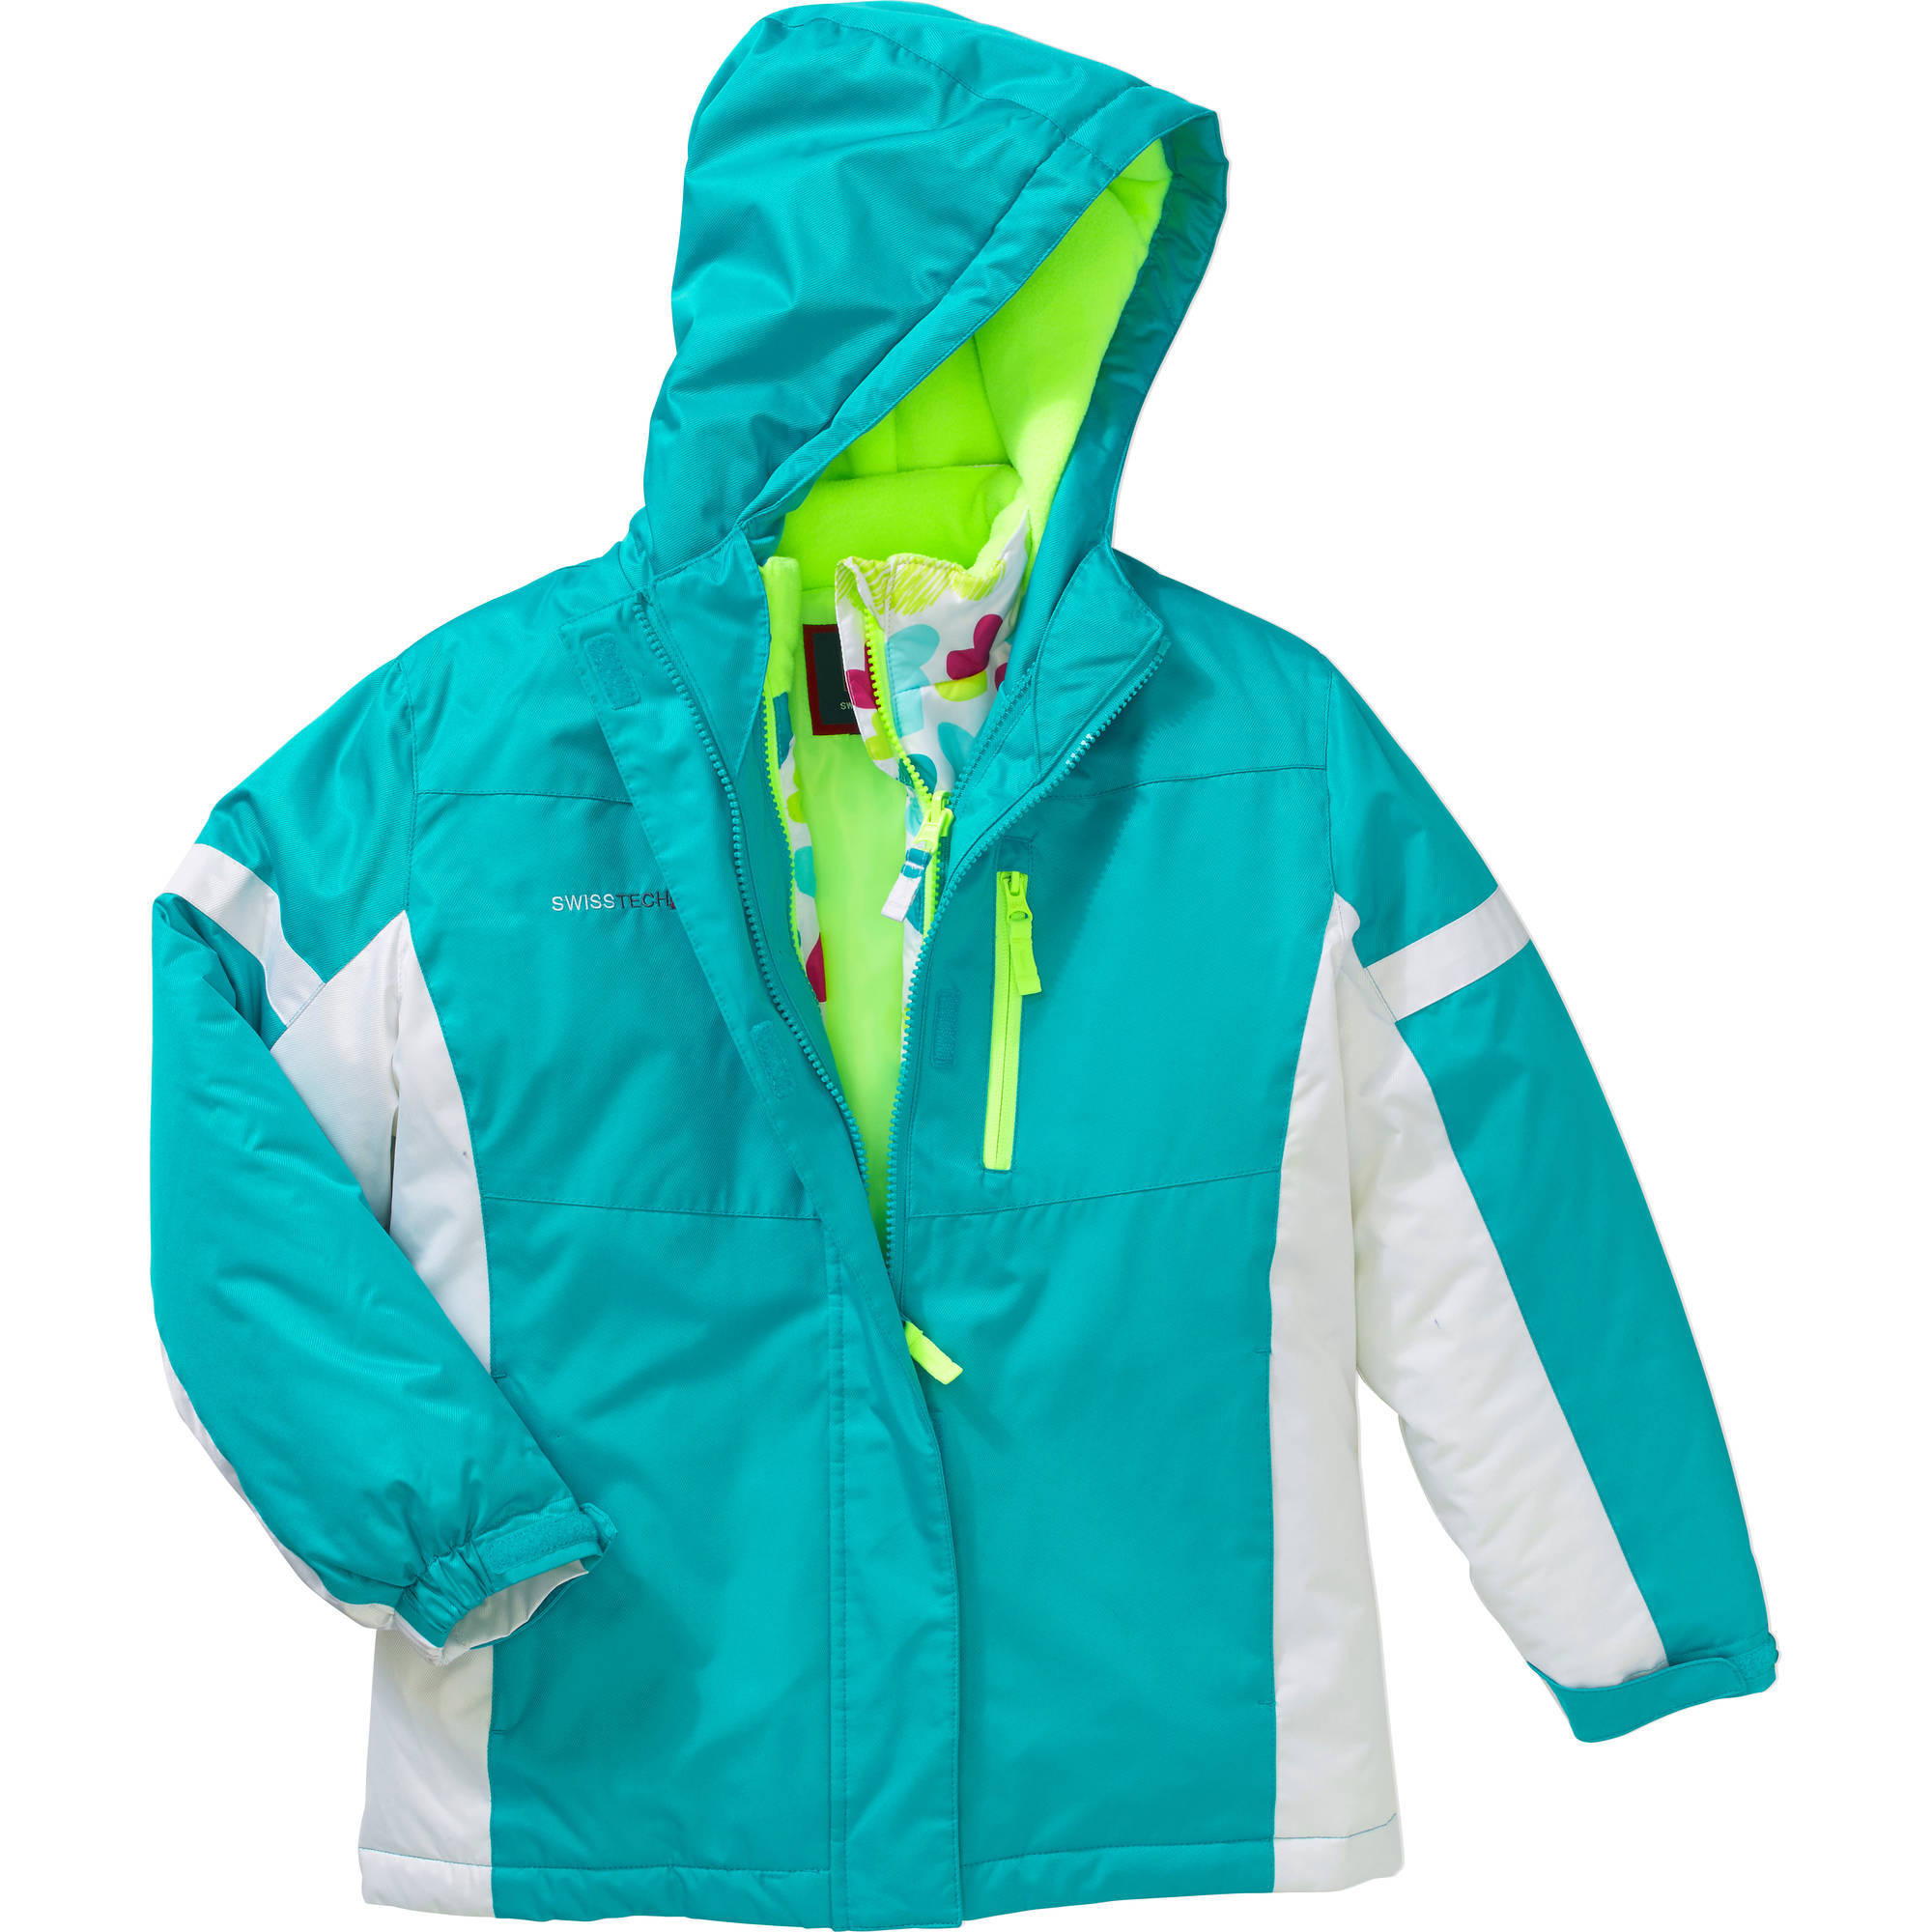 Swiss Tech Girls' 3 in 1 Systems Jacket